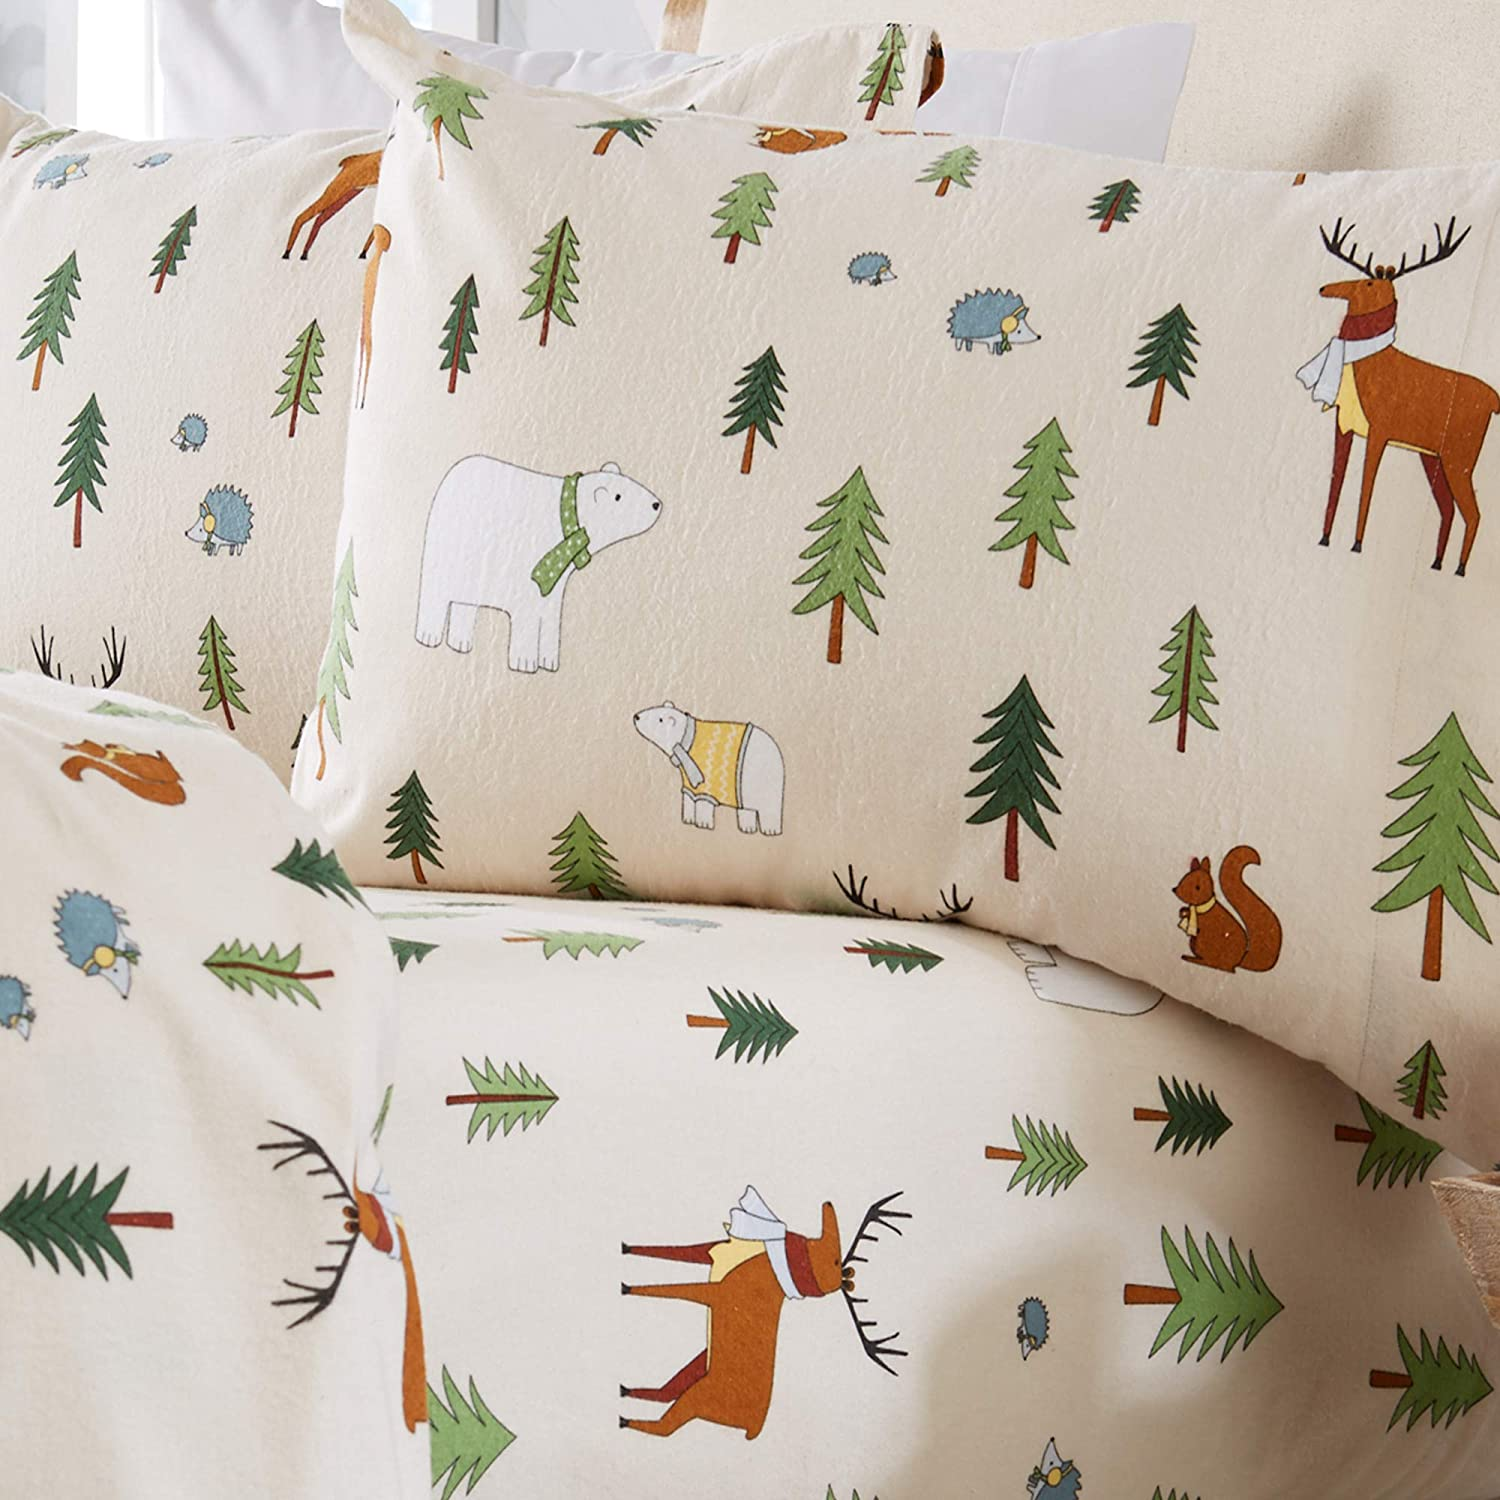 Home Fashion Designs Stratton Collection Extra Soft Printed 100% Turkish Cotton Flannel Sheet Set. Warm, Cozy, Lightweight, Luxury Winter Bed Sheets. (Twin, Wildlife)